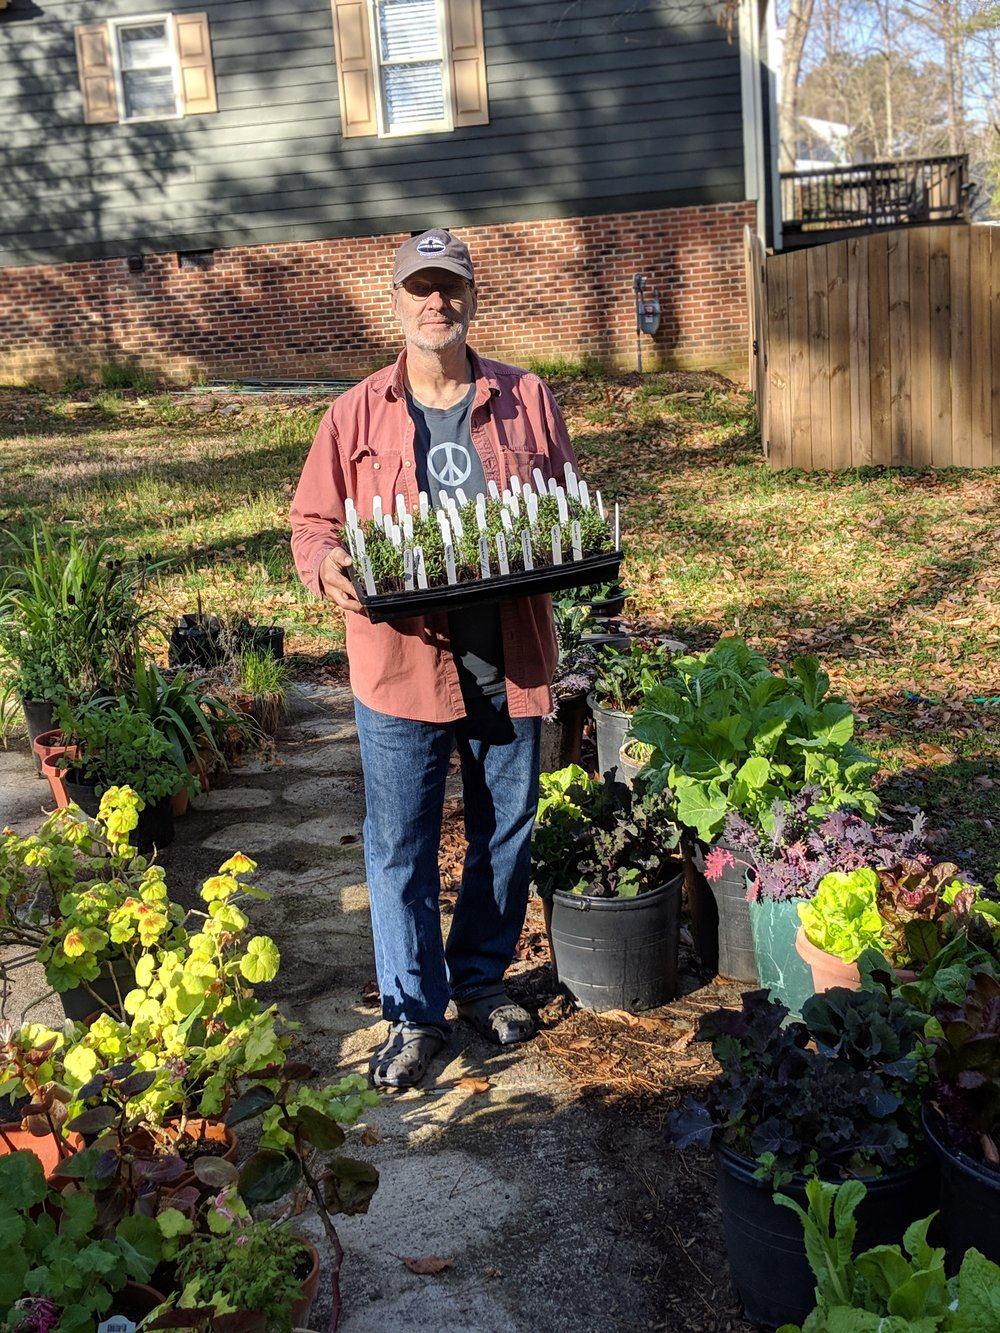 Moving some seedlings among the greens and other plants